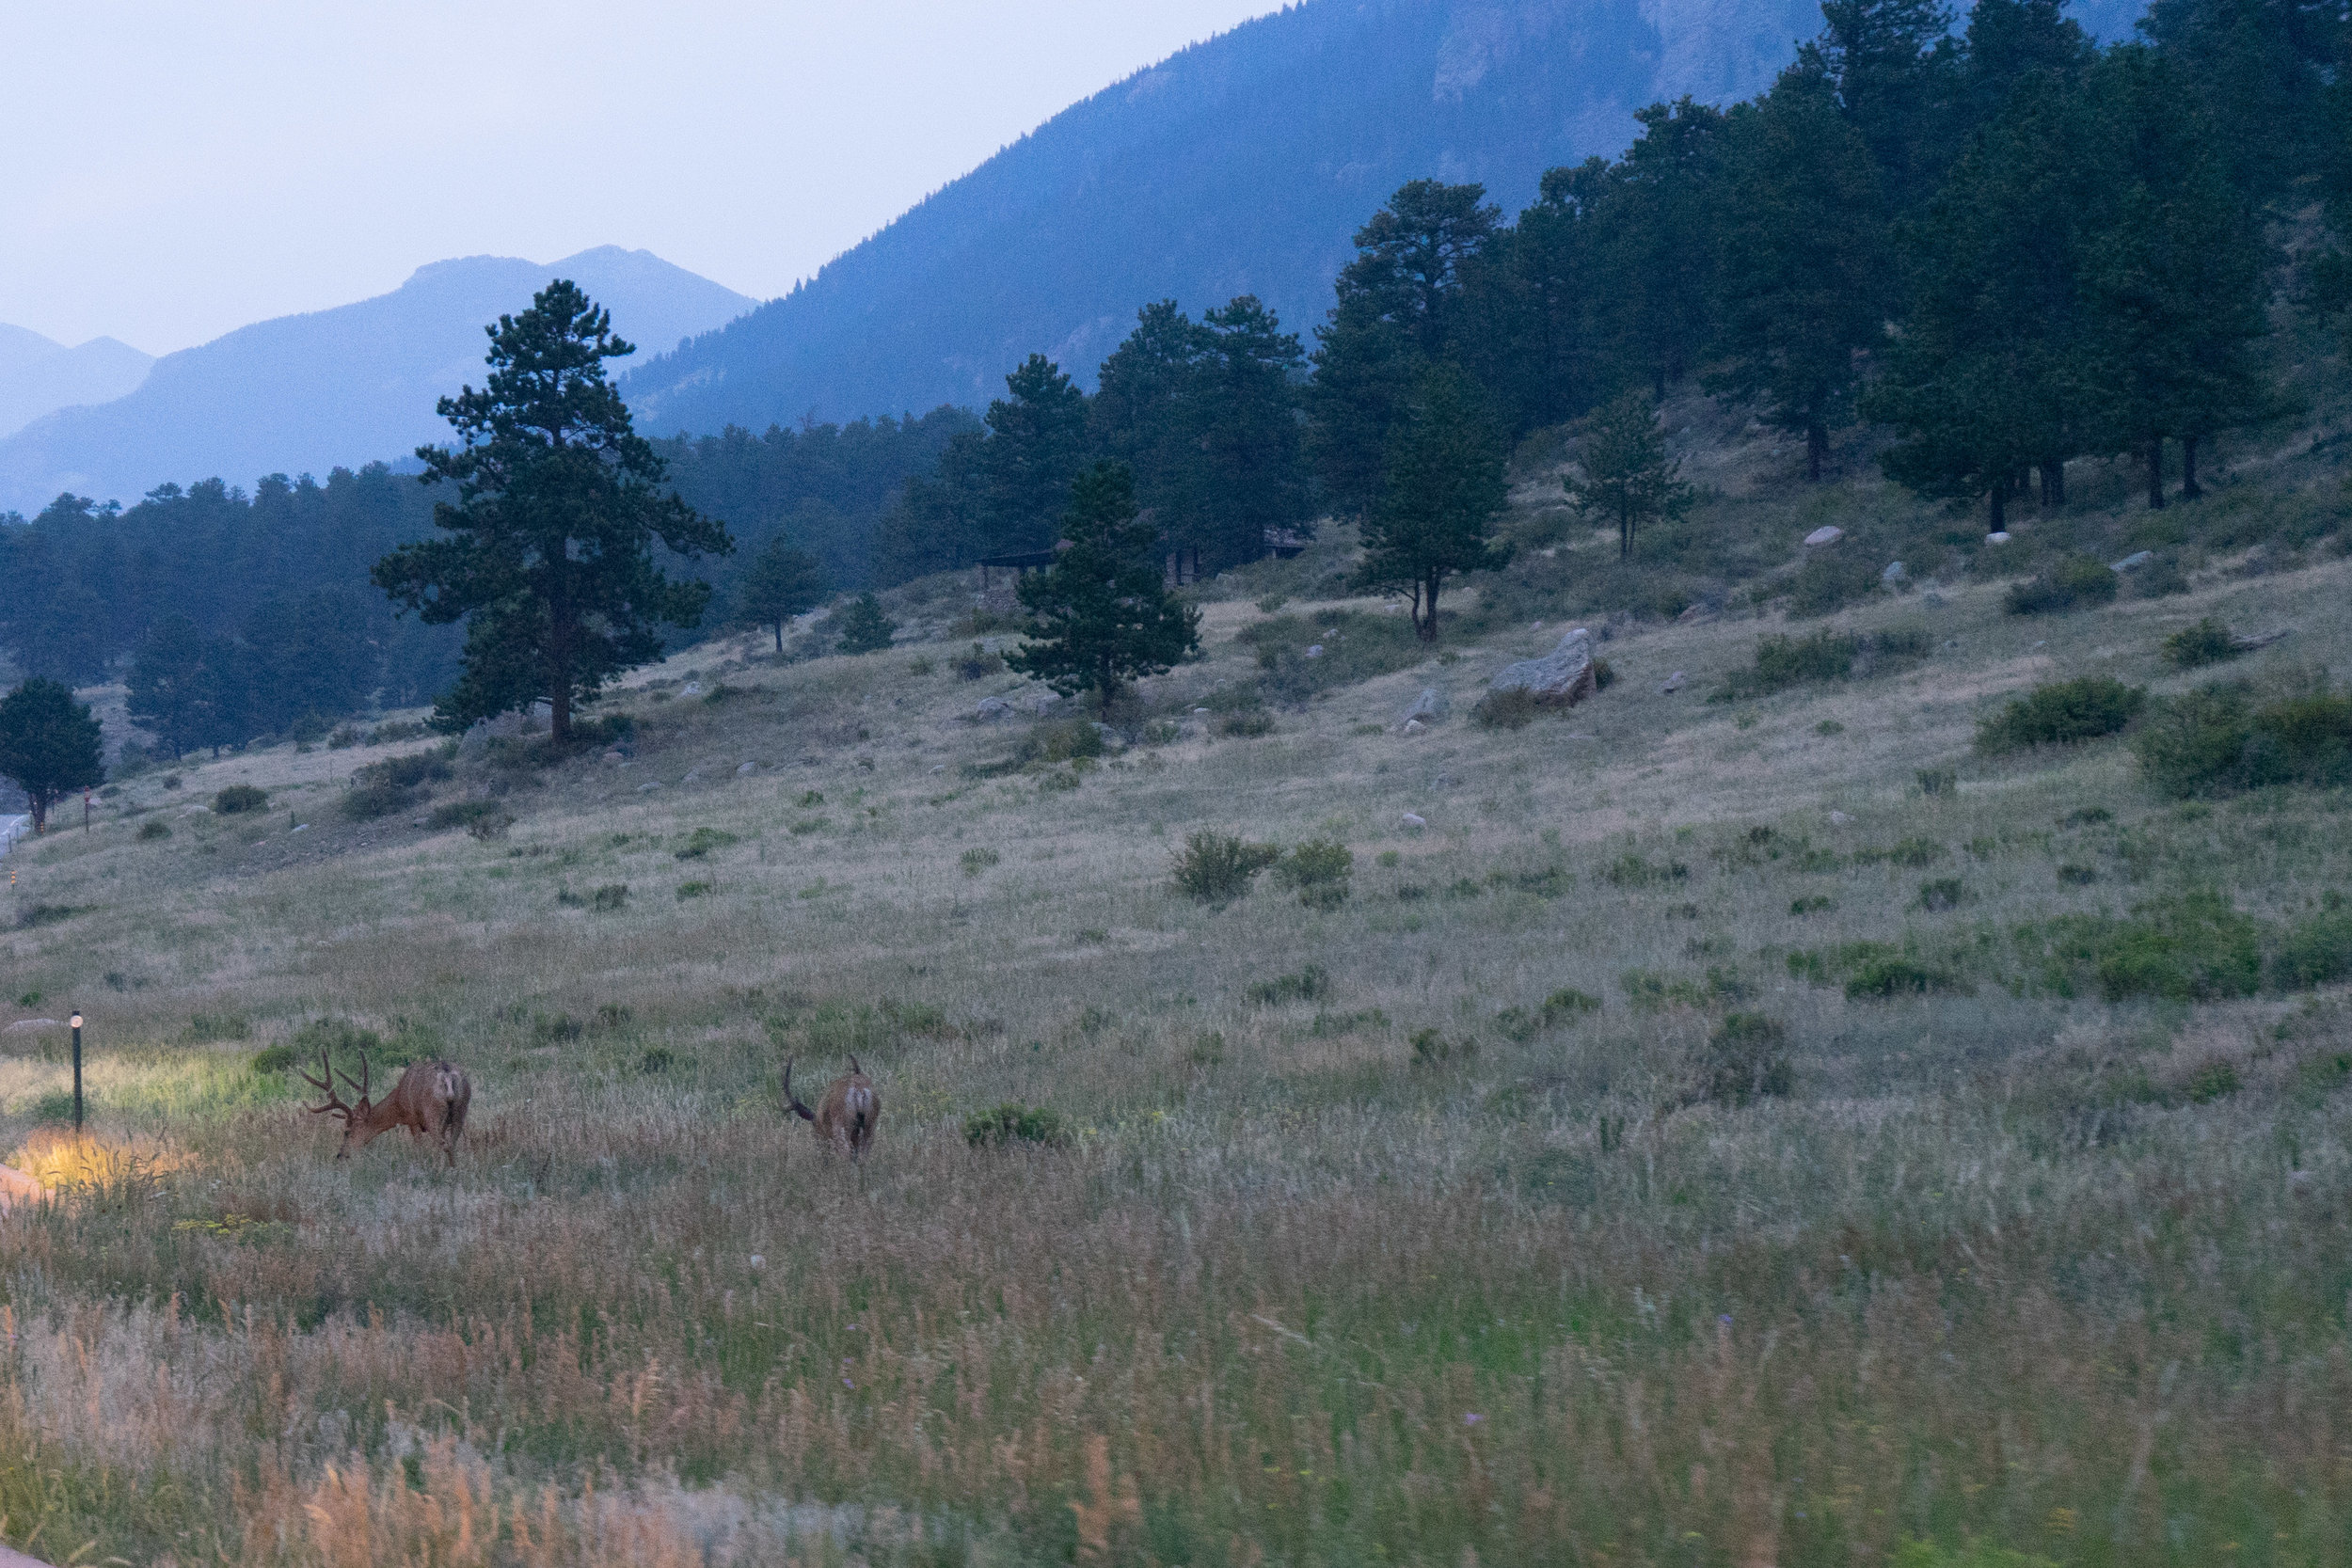 Elk at dusk. Rocky Mountain National Park 2018